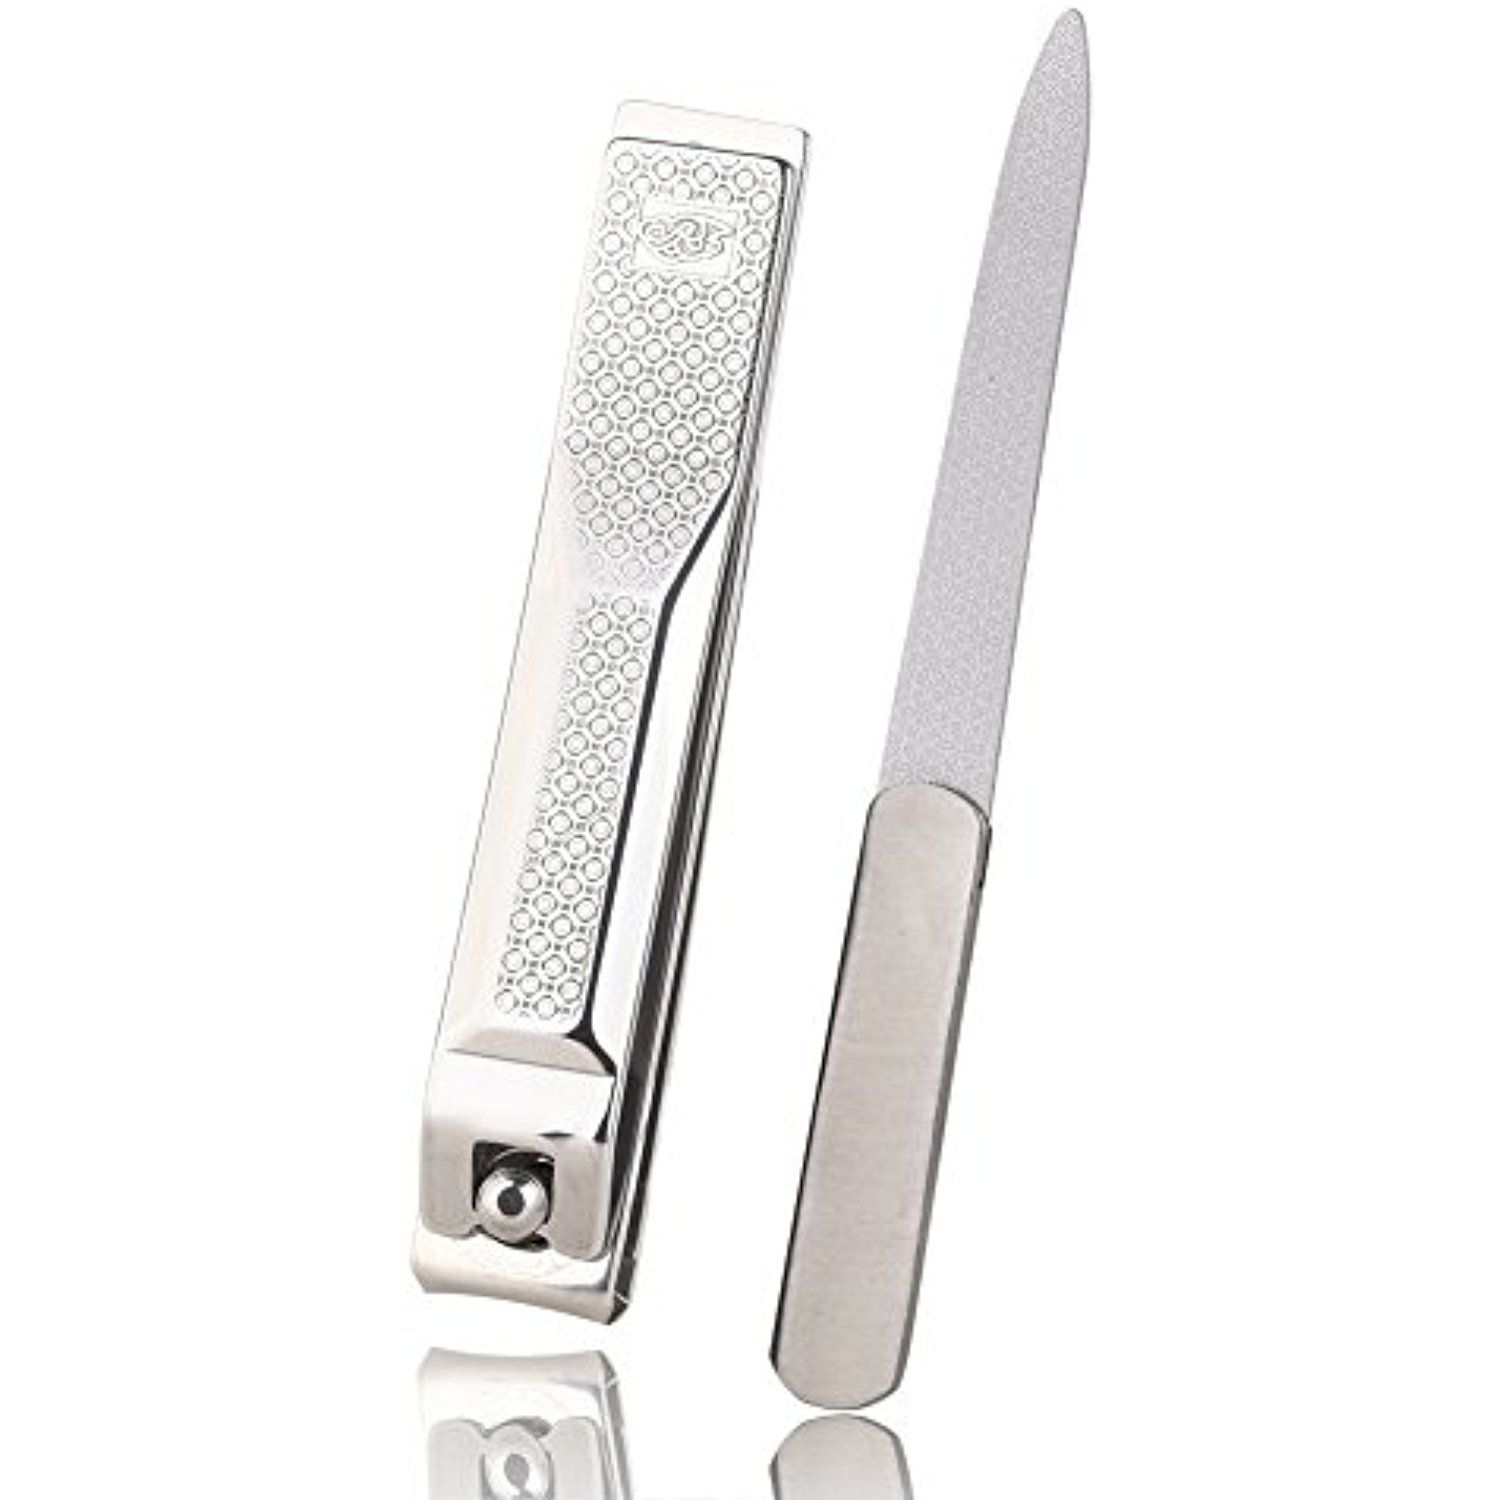 Nail Clippers by Aguder Stainless Steel Fingernail and Toenail ...